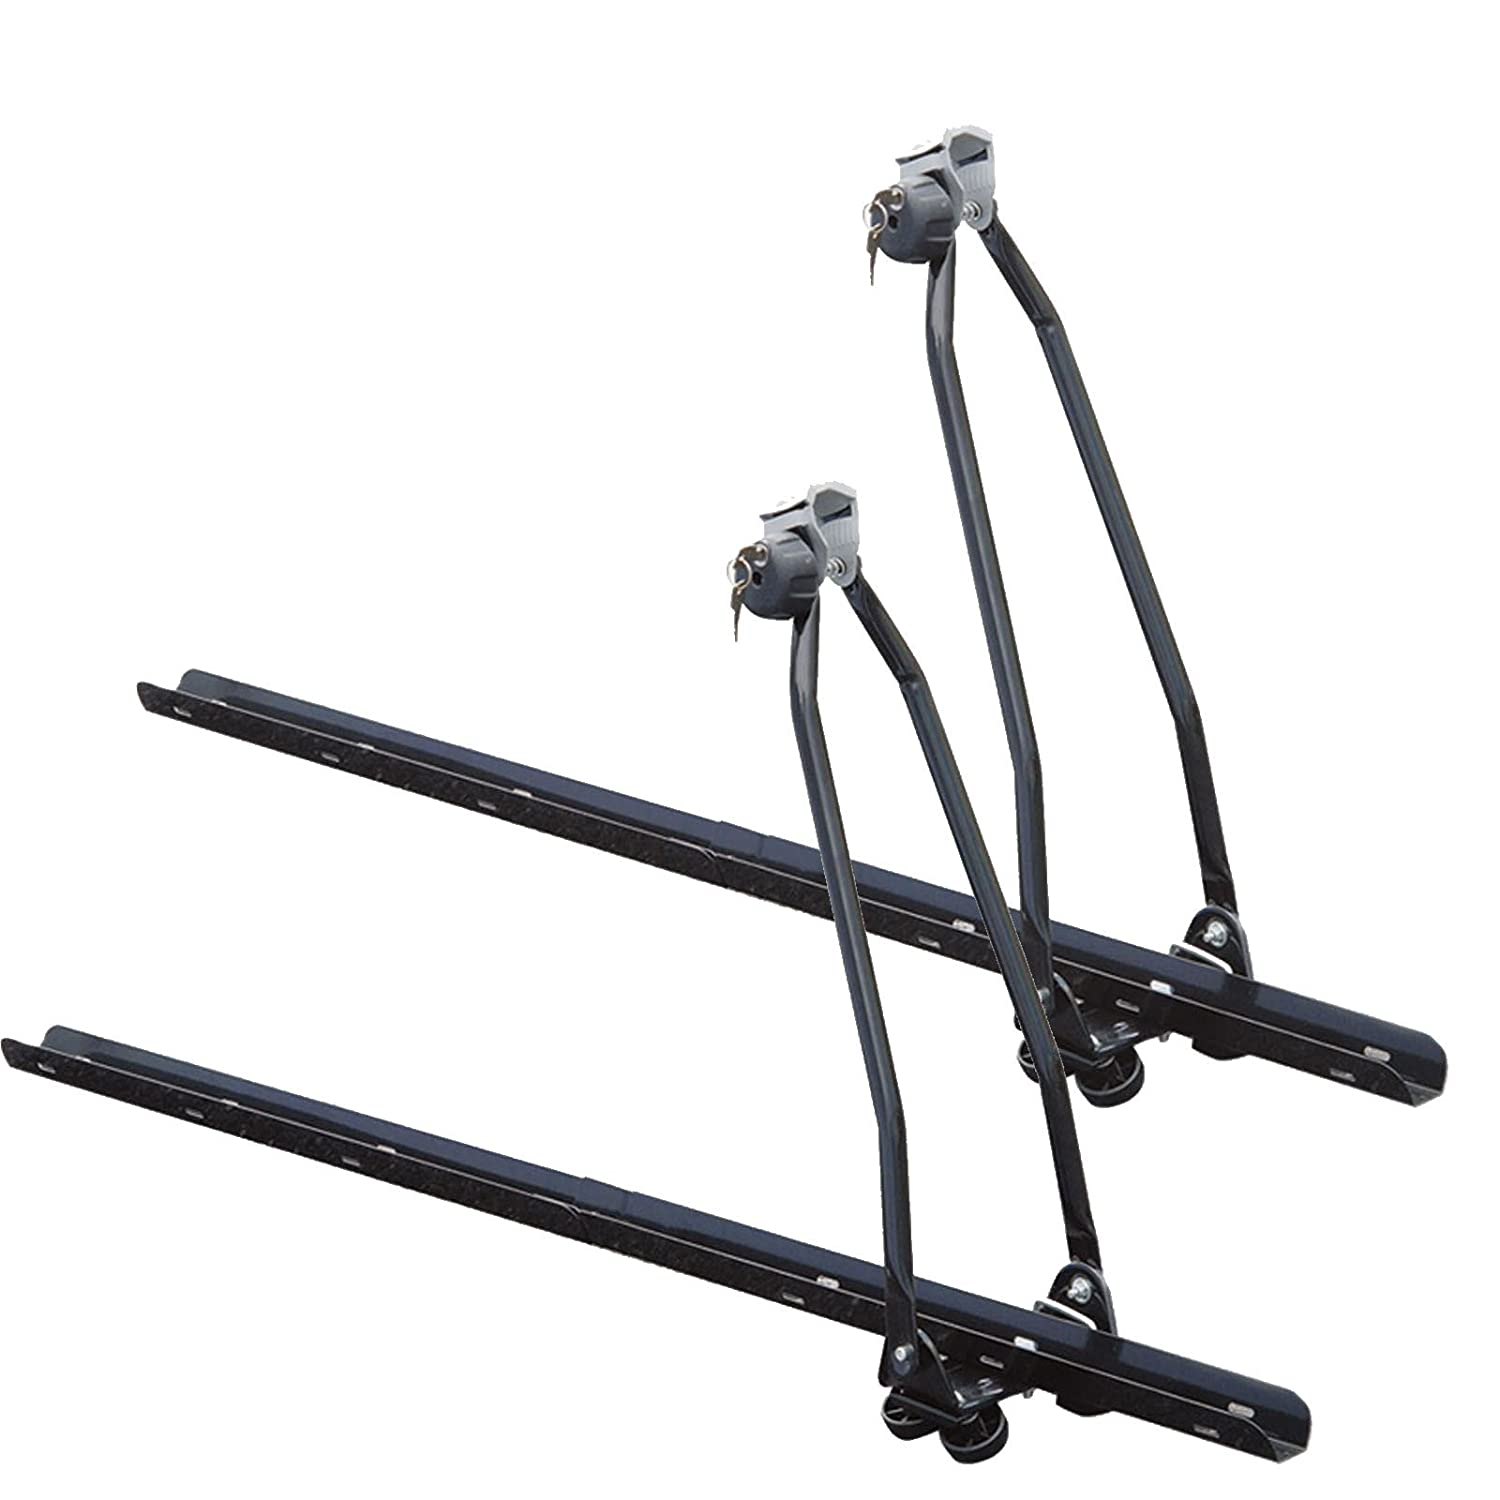 2 x Universal Car Roof Bar Mounted Bicycle Carrier Upright Bike Rack Cycle Locking Marko Auto